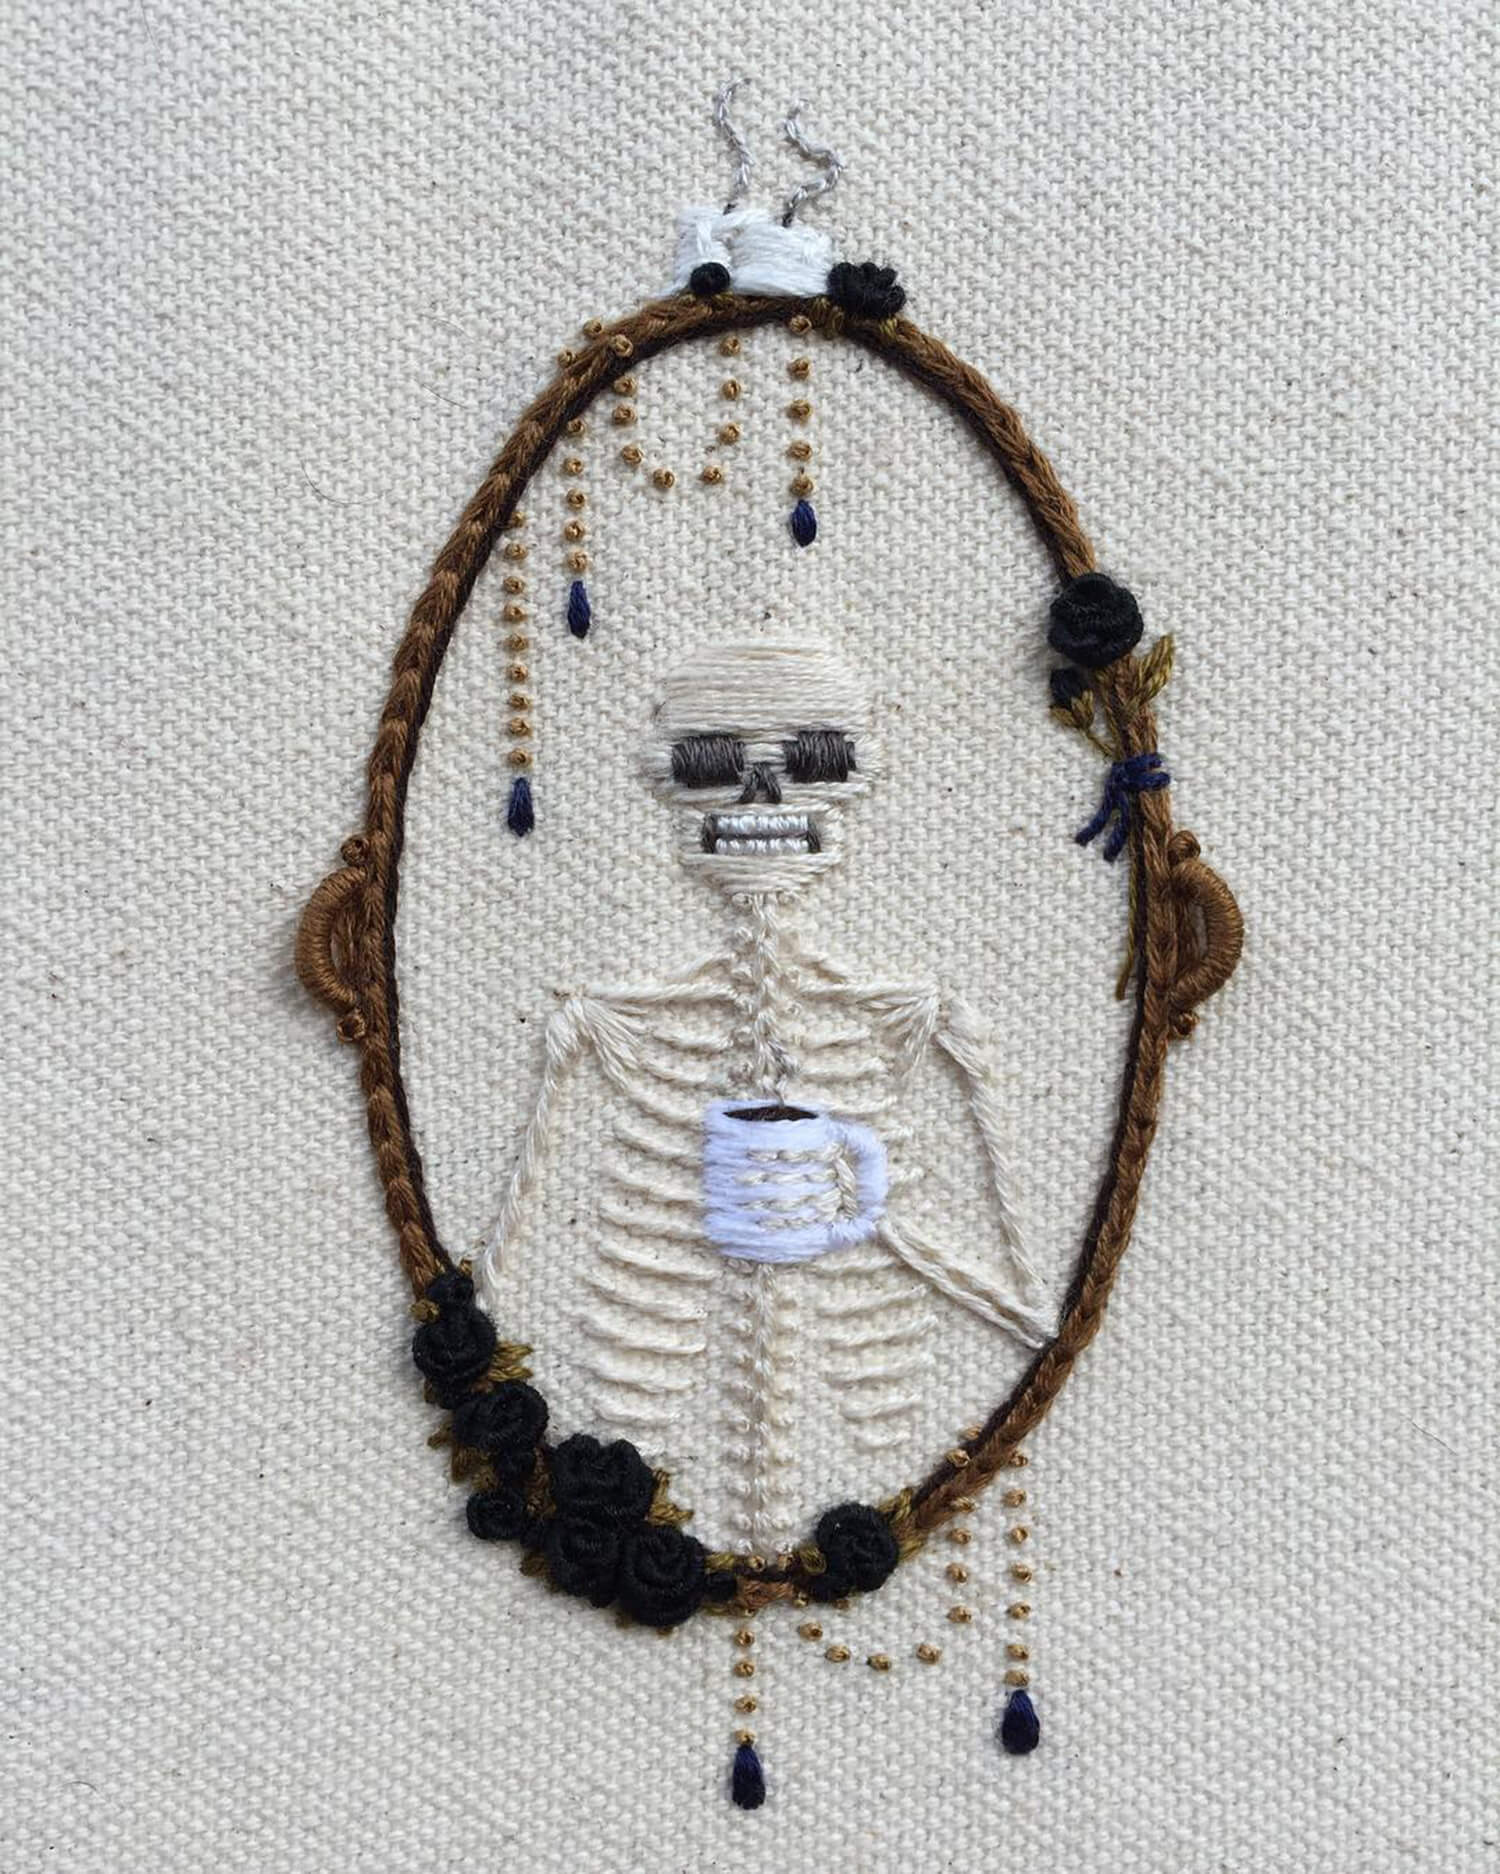 embroidered skeleton portrait holding a cup